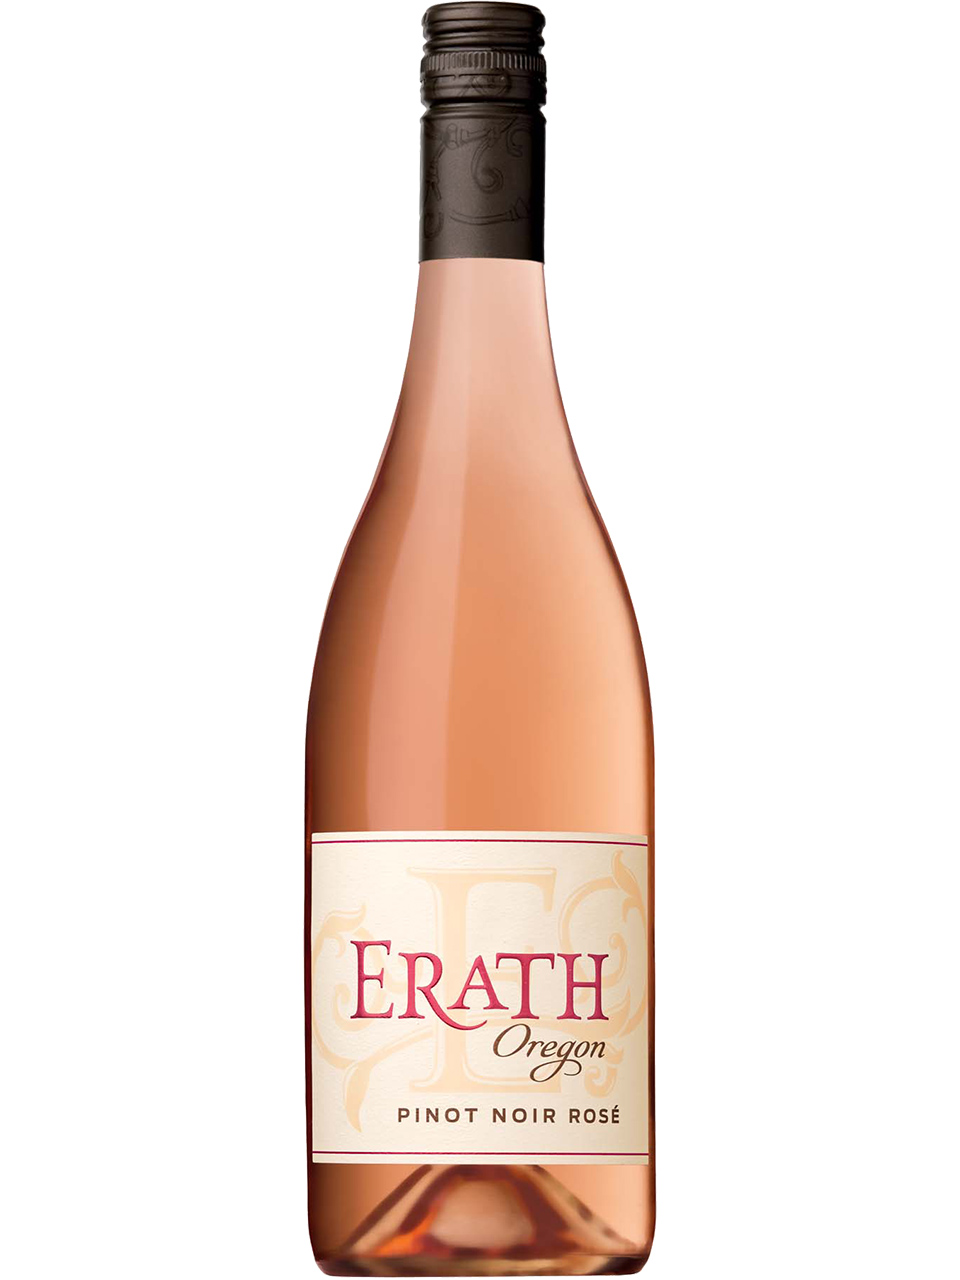 Erath Oregon Rose Pinot Noir